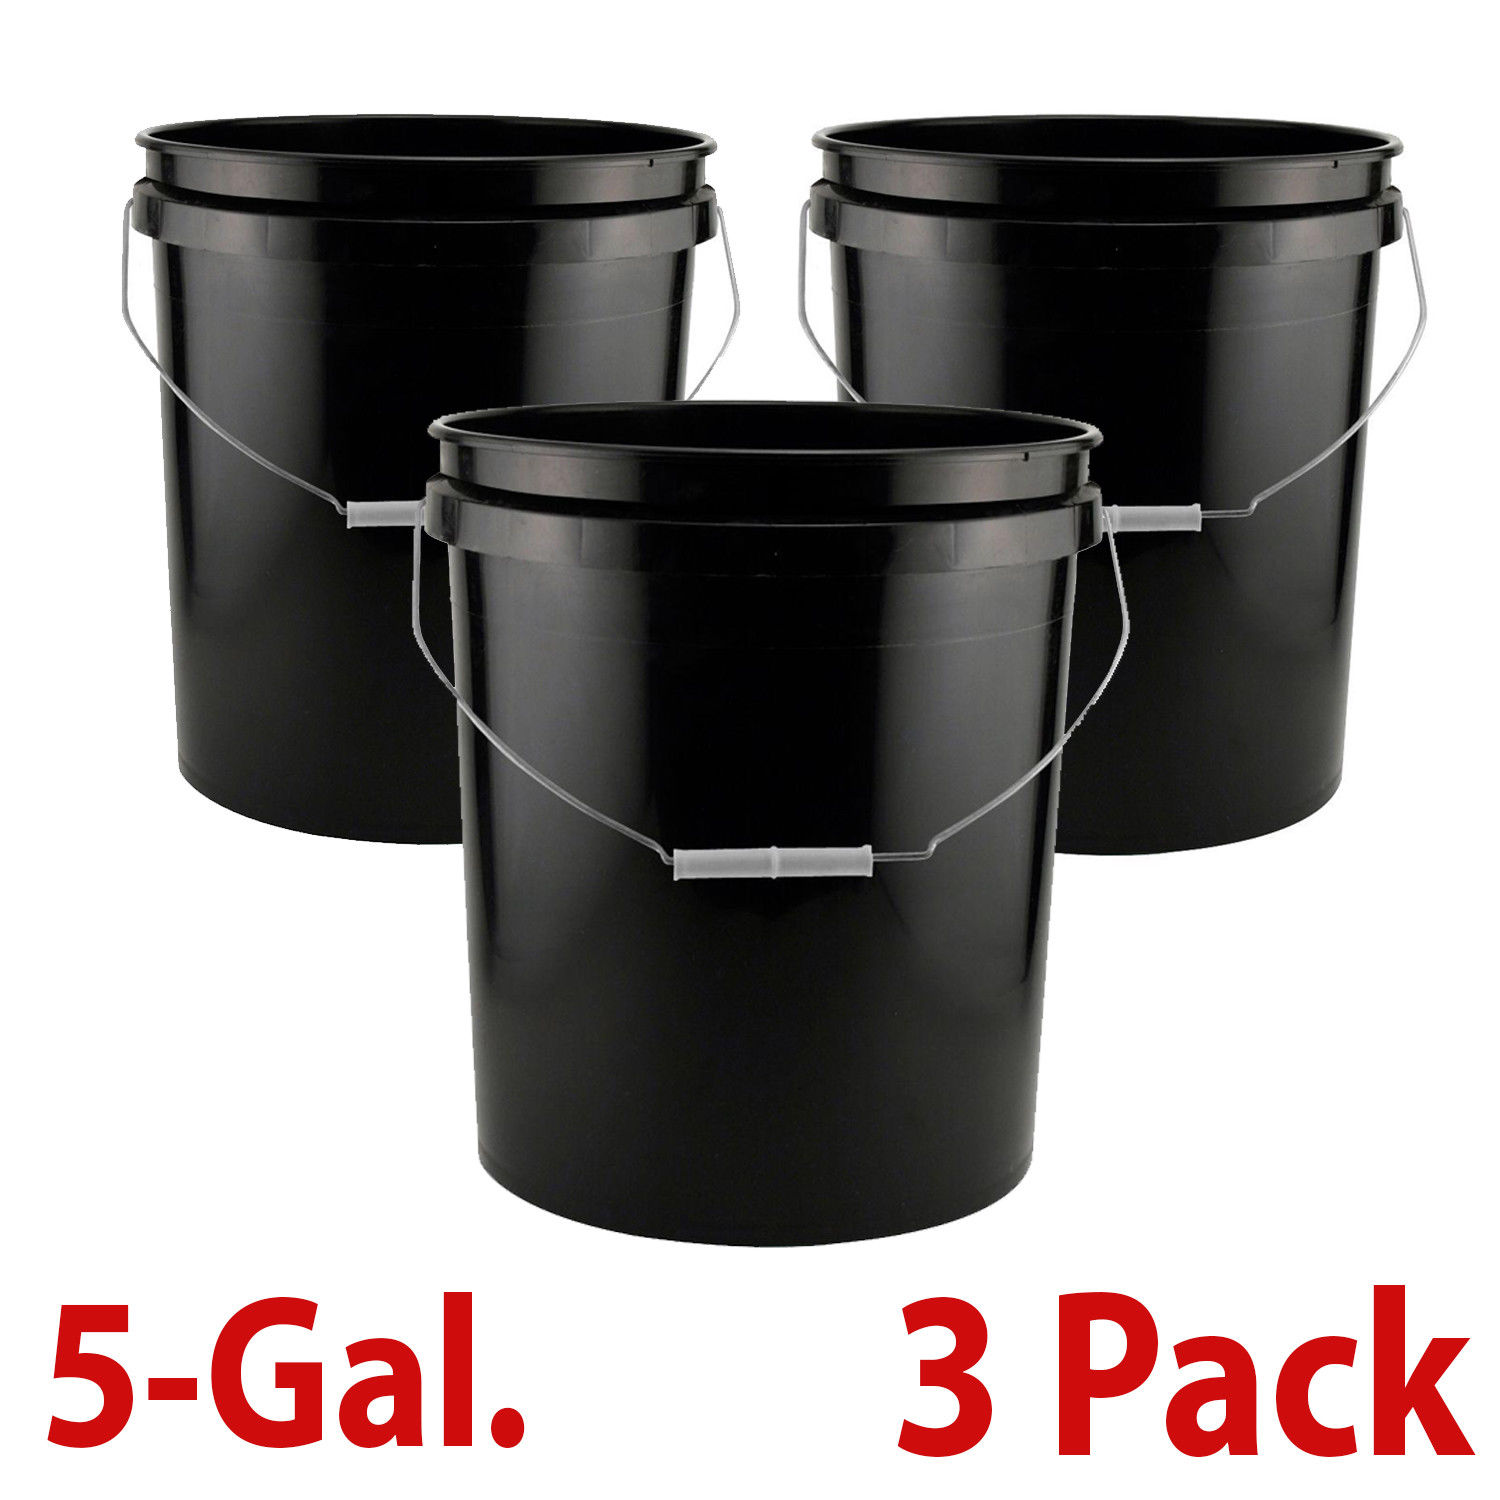 5 Gallon Paint Bucket Plastic Commercial Multi Purpose Food Grade Storage 3 PACK 1